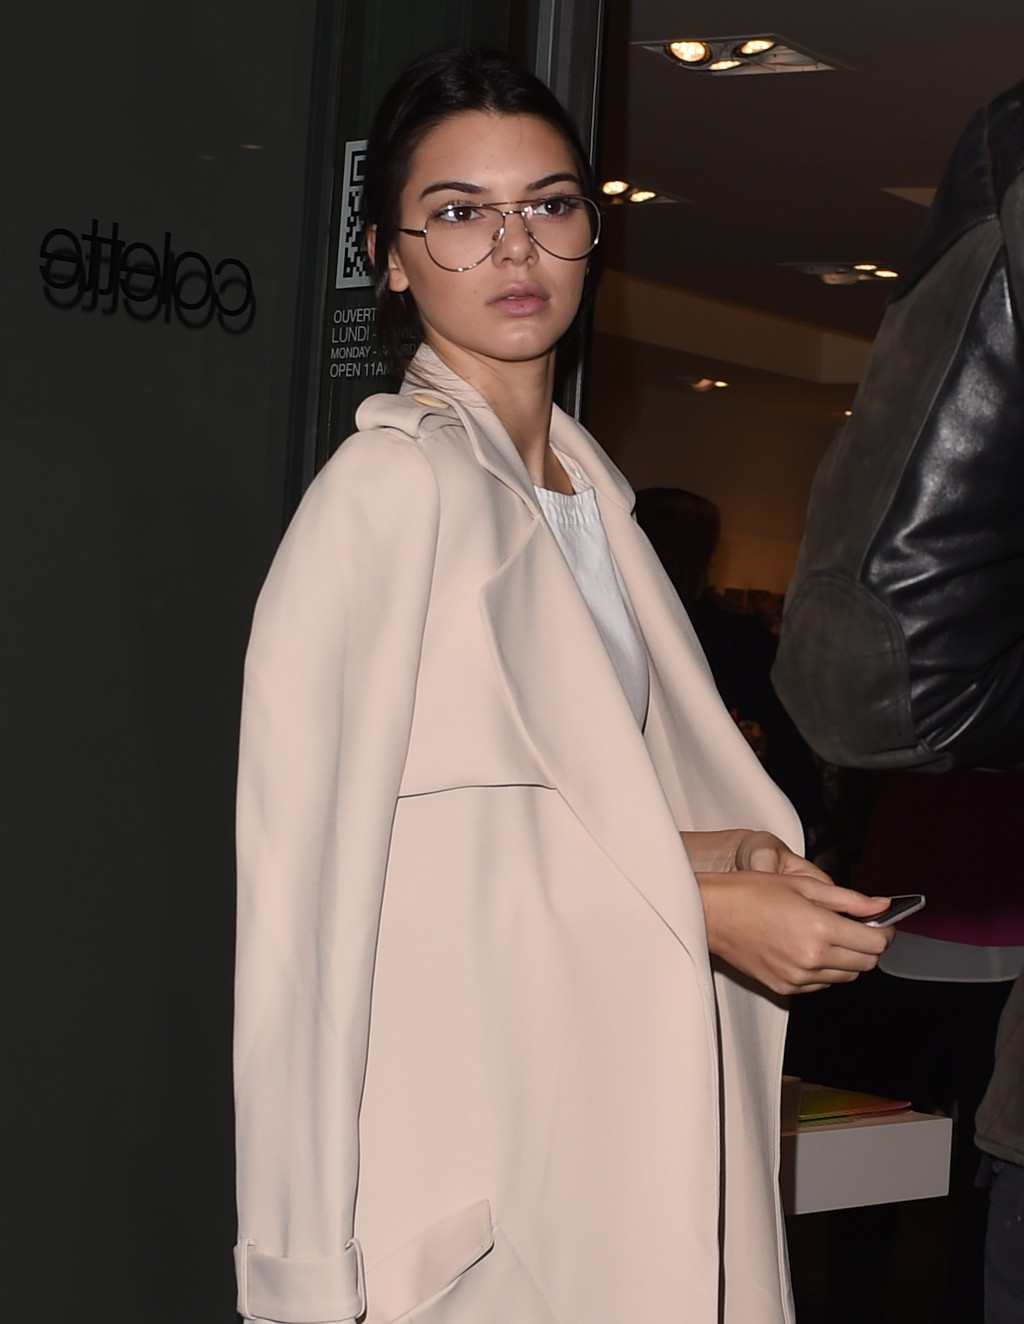 Ditch the Contacts for Cool Glasses à la Kendall